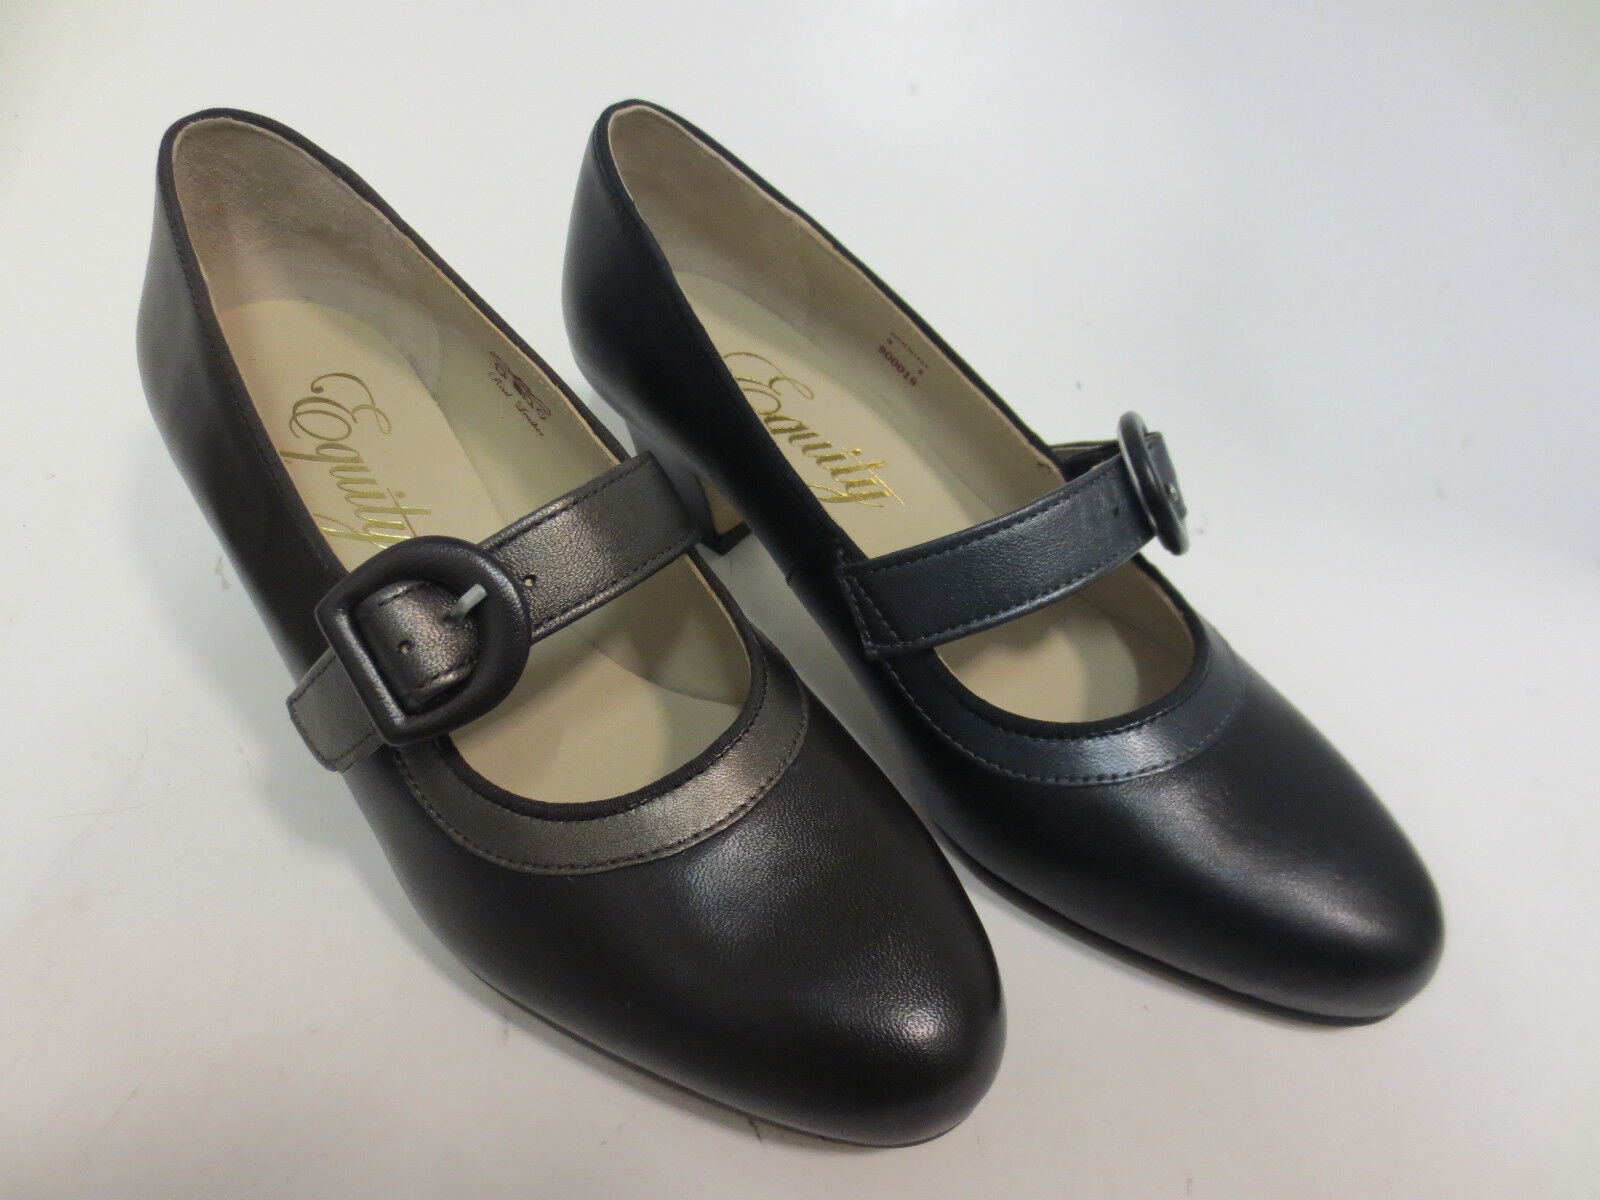 EQUITY SHOE MAXINE LADIES WIDE FITTING SHOE EQUITY a34359